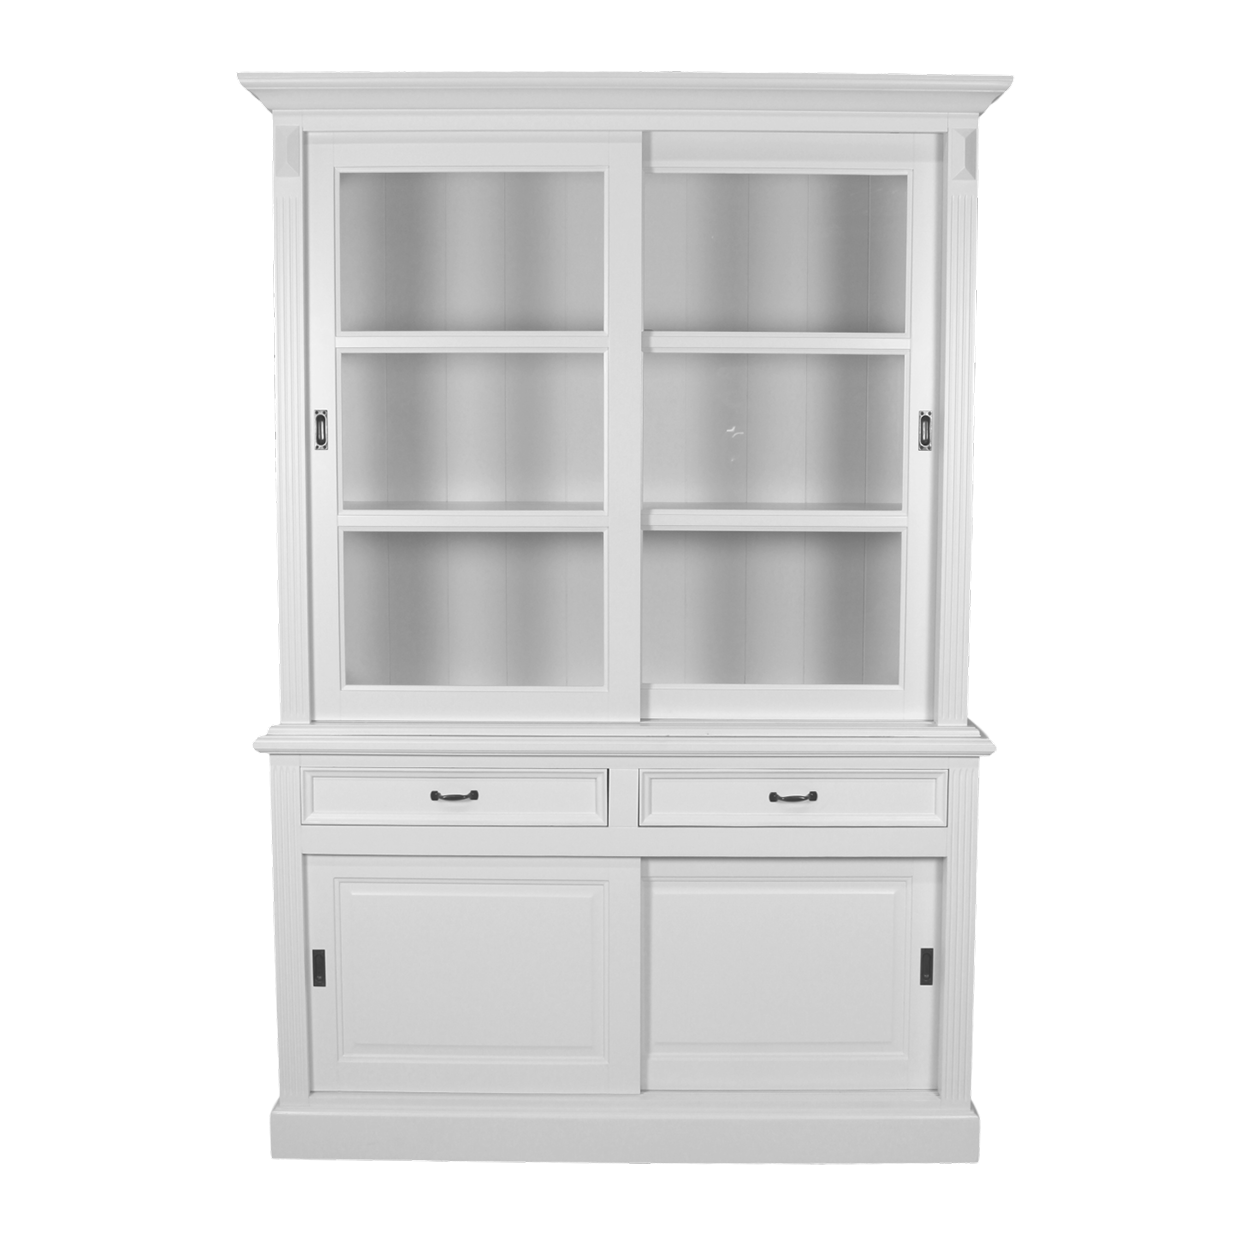 buffetschrank mit soft close schublade weiss schranken henk schram meubelen. Black Bedroom Furniture Sets. Home Design Ideas